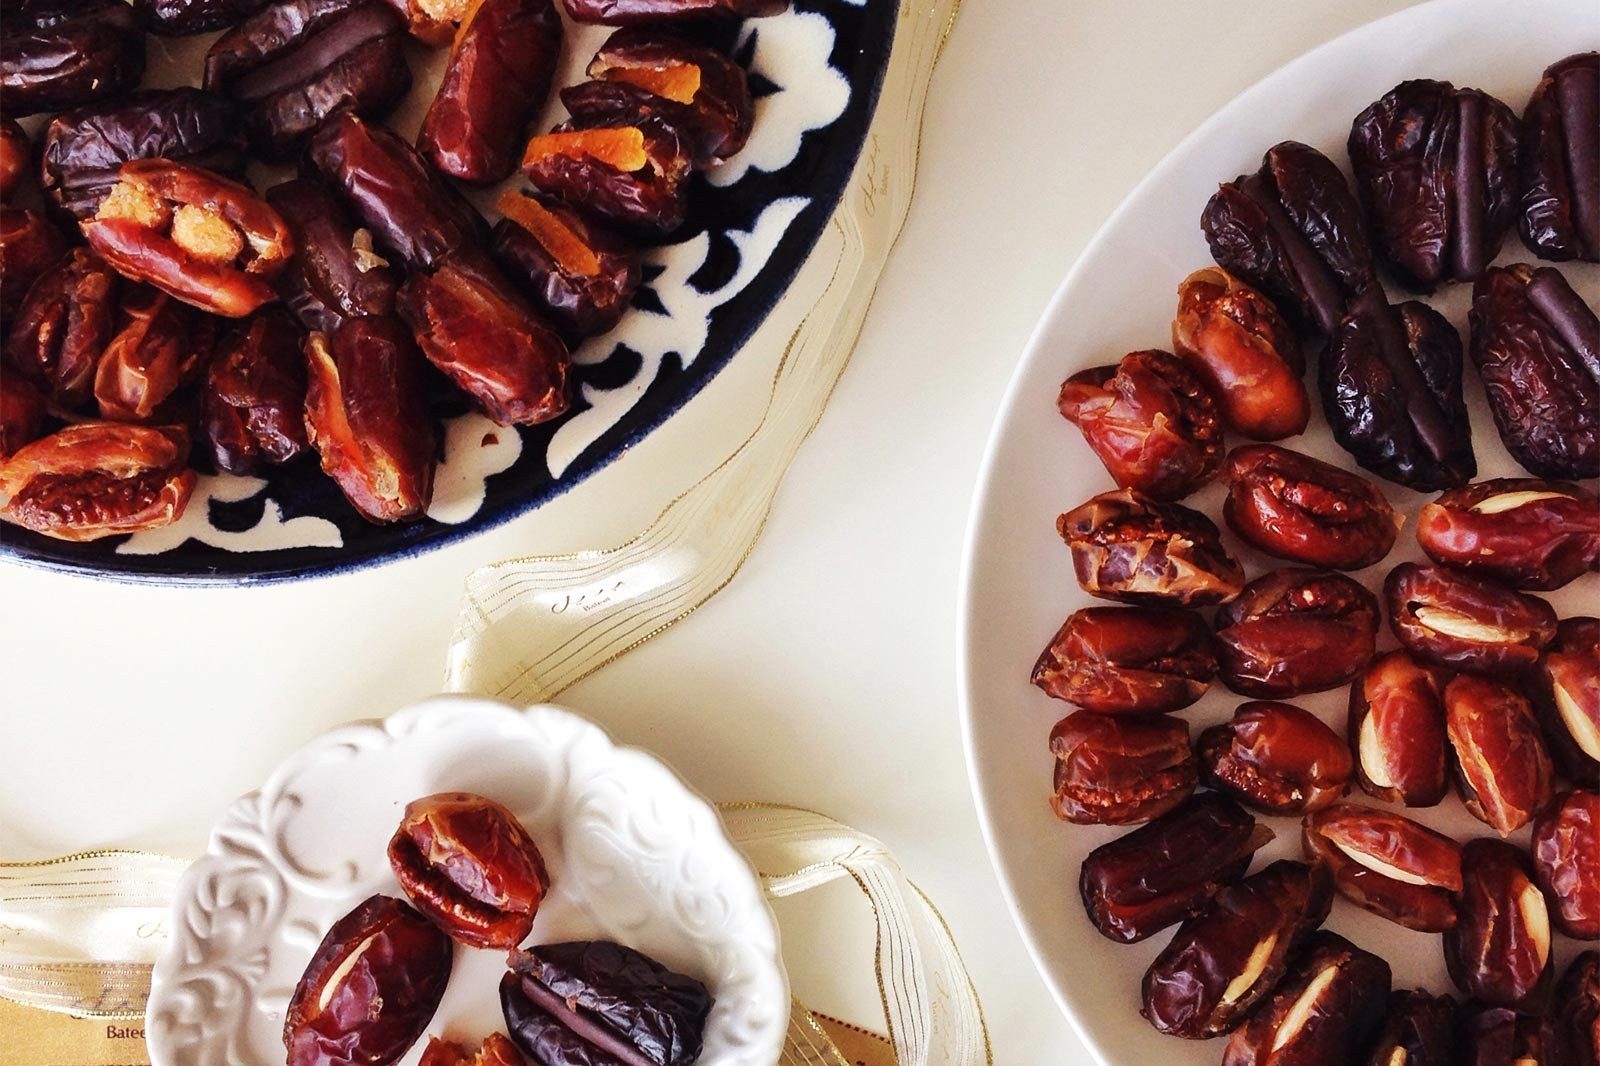 How to buy dates in Dubai